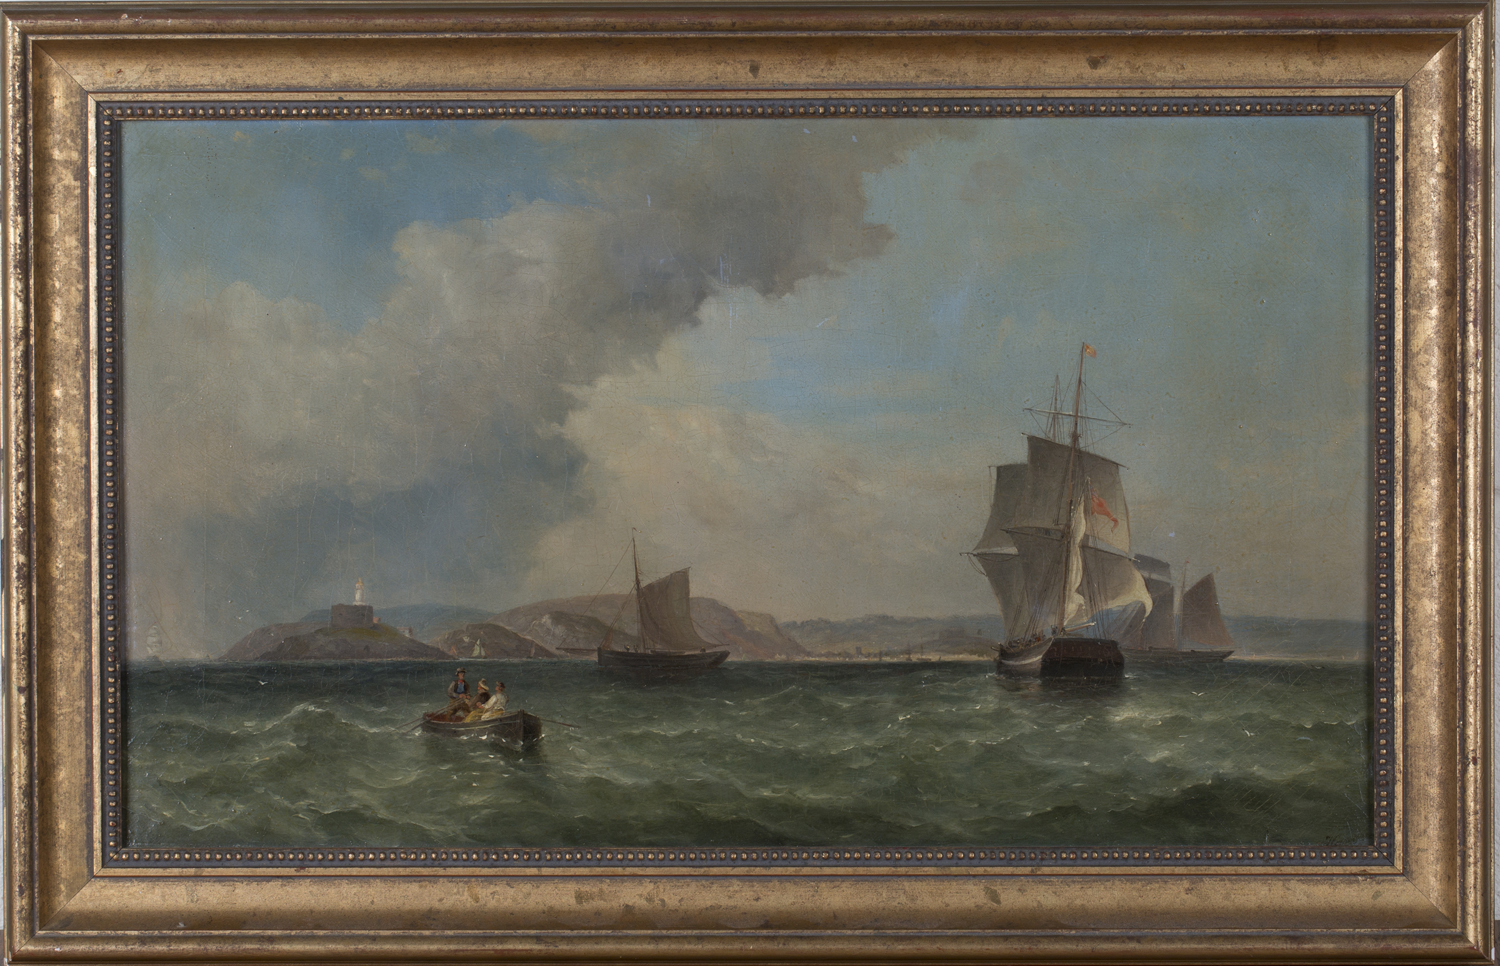 Lot 4 - British School - Coastal Scene with Boats and Ships, Lighthouse and Distant Town, 19th century oil